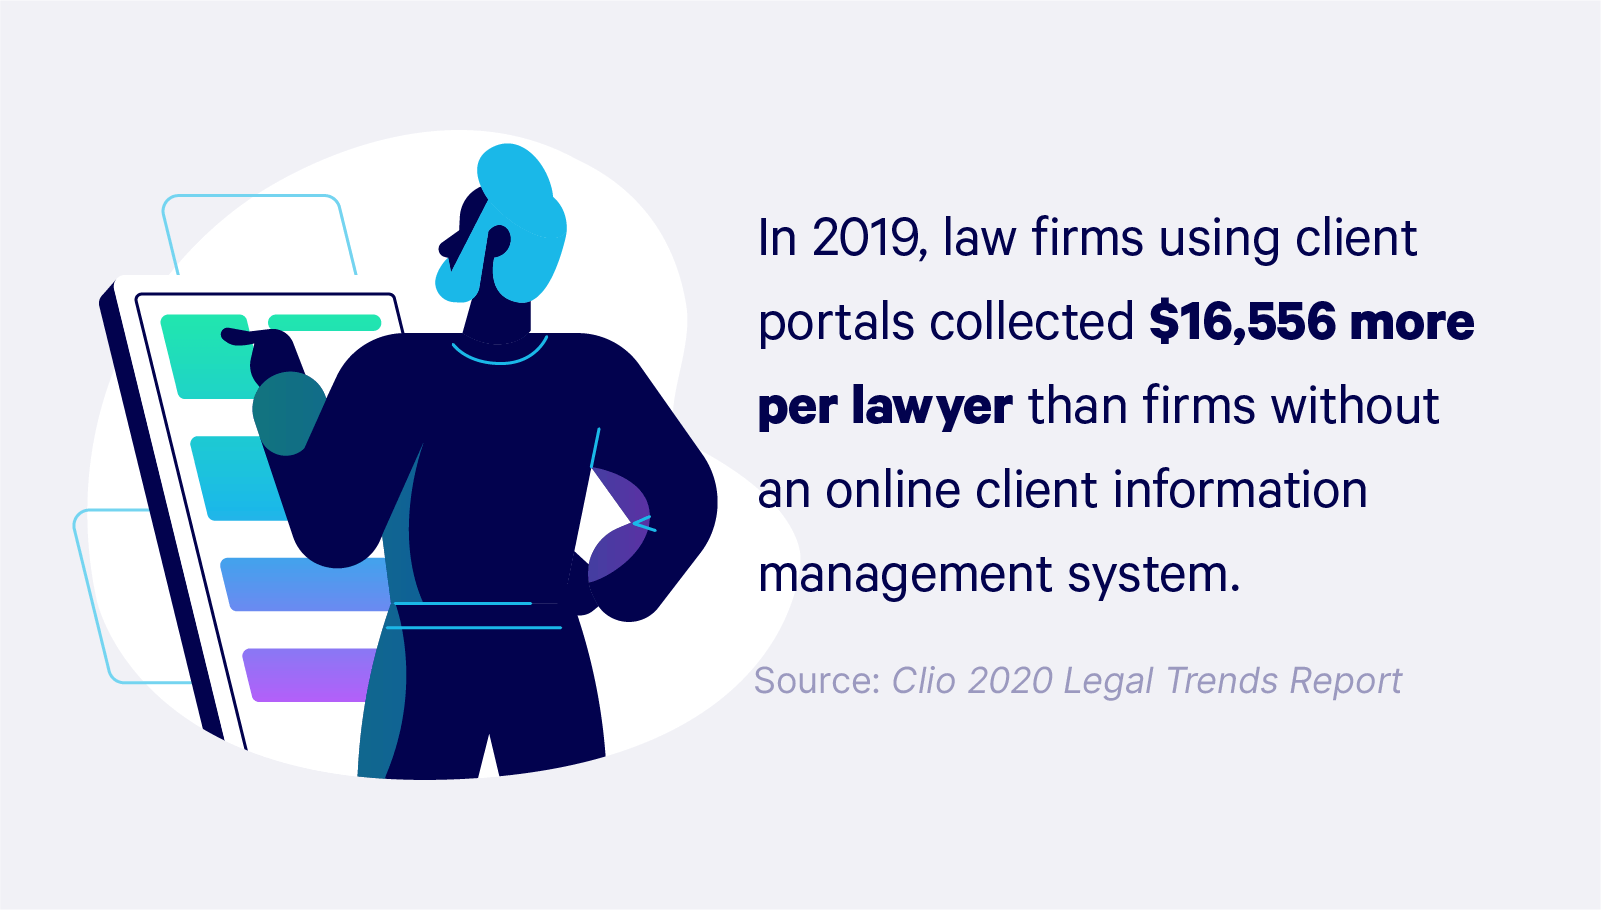 Illustrated graphic with copy: In 2019, law firms using client portals collected $16,556 more per lawyer than firms without an online client information management system.